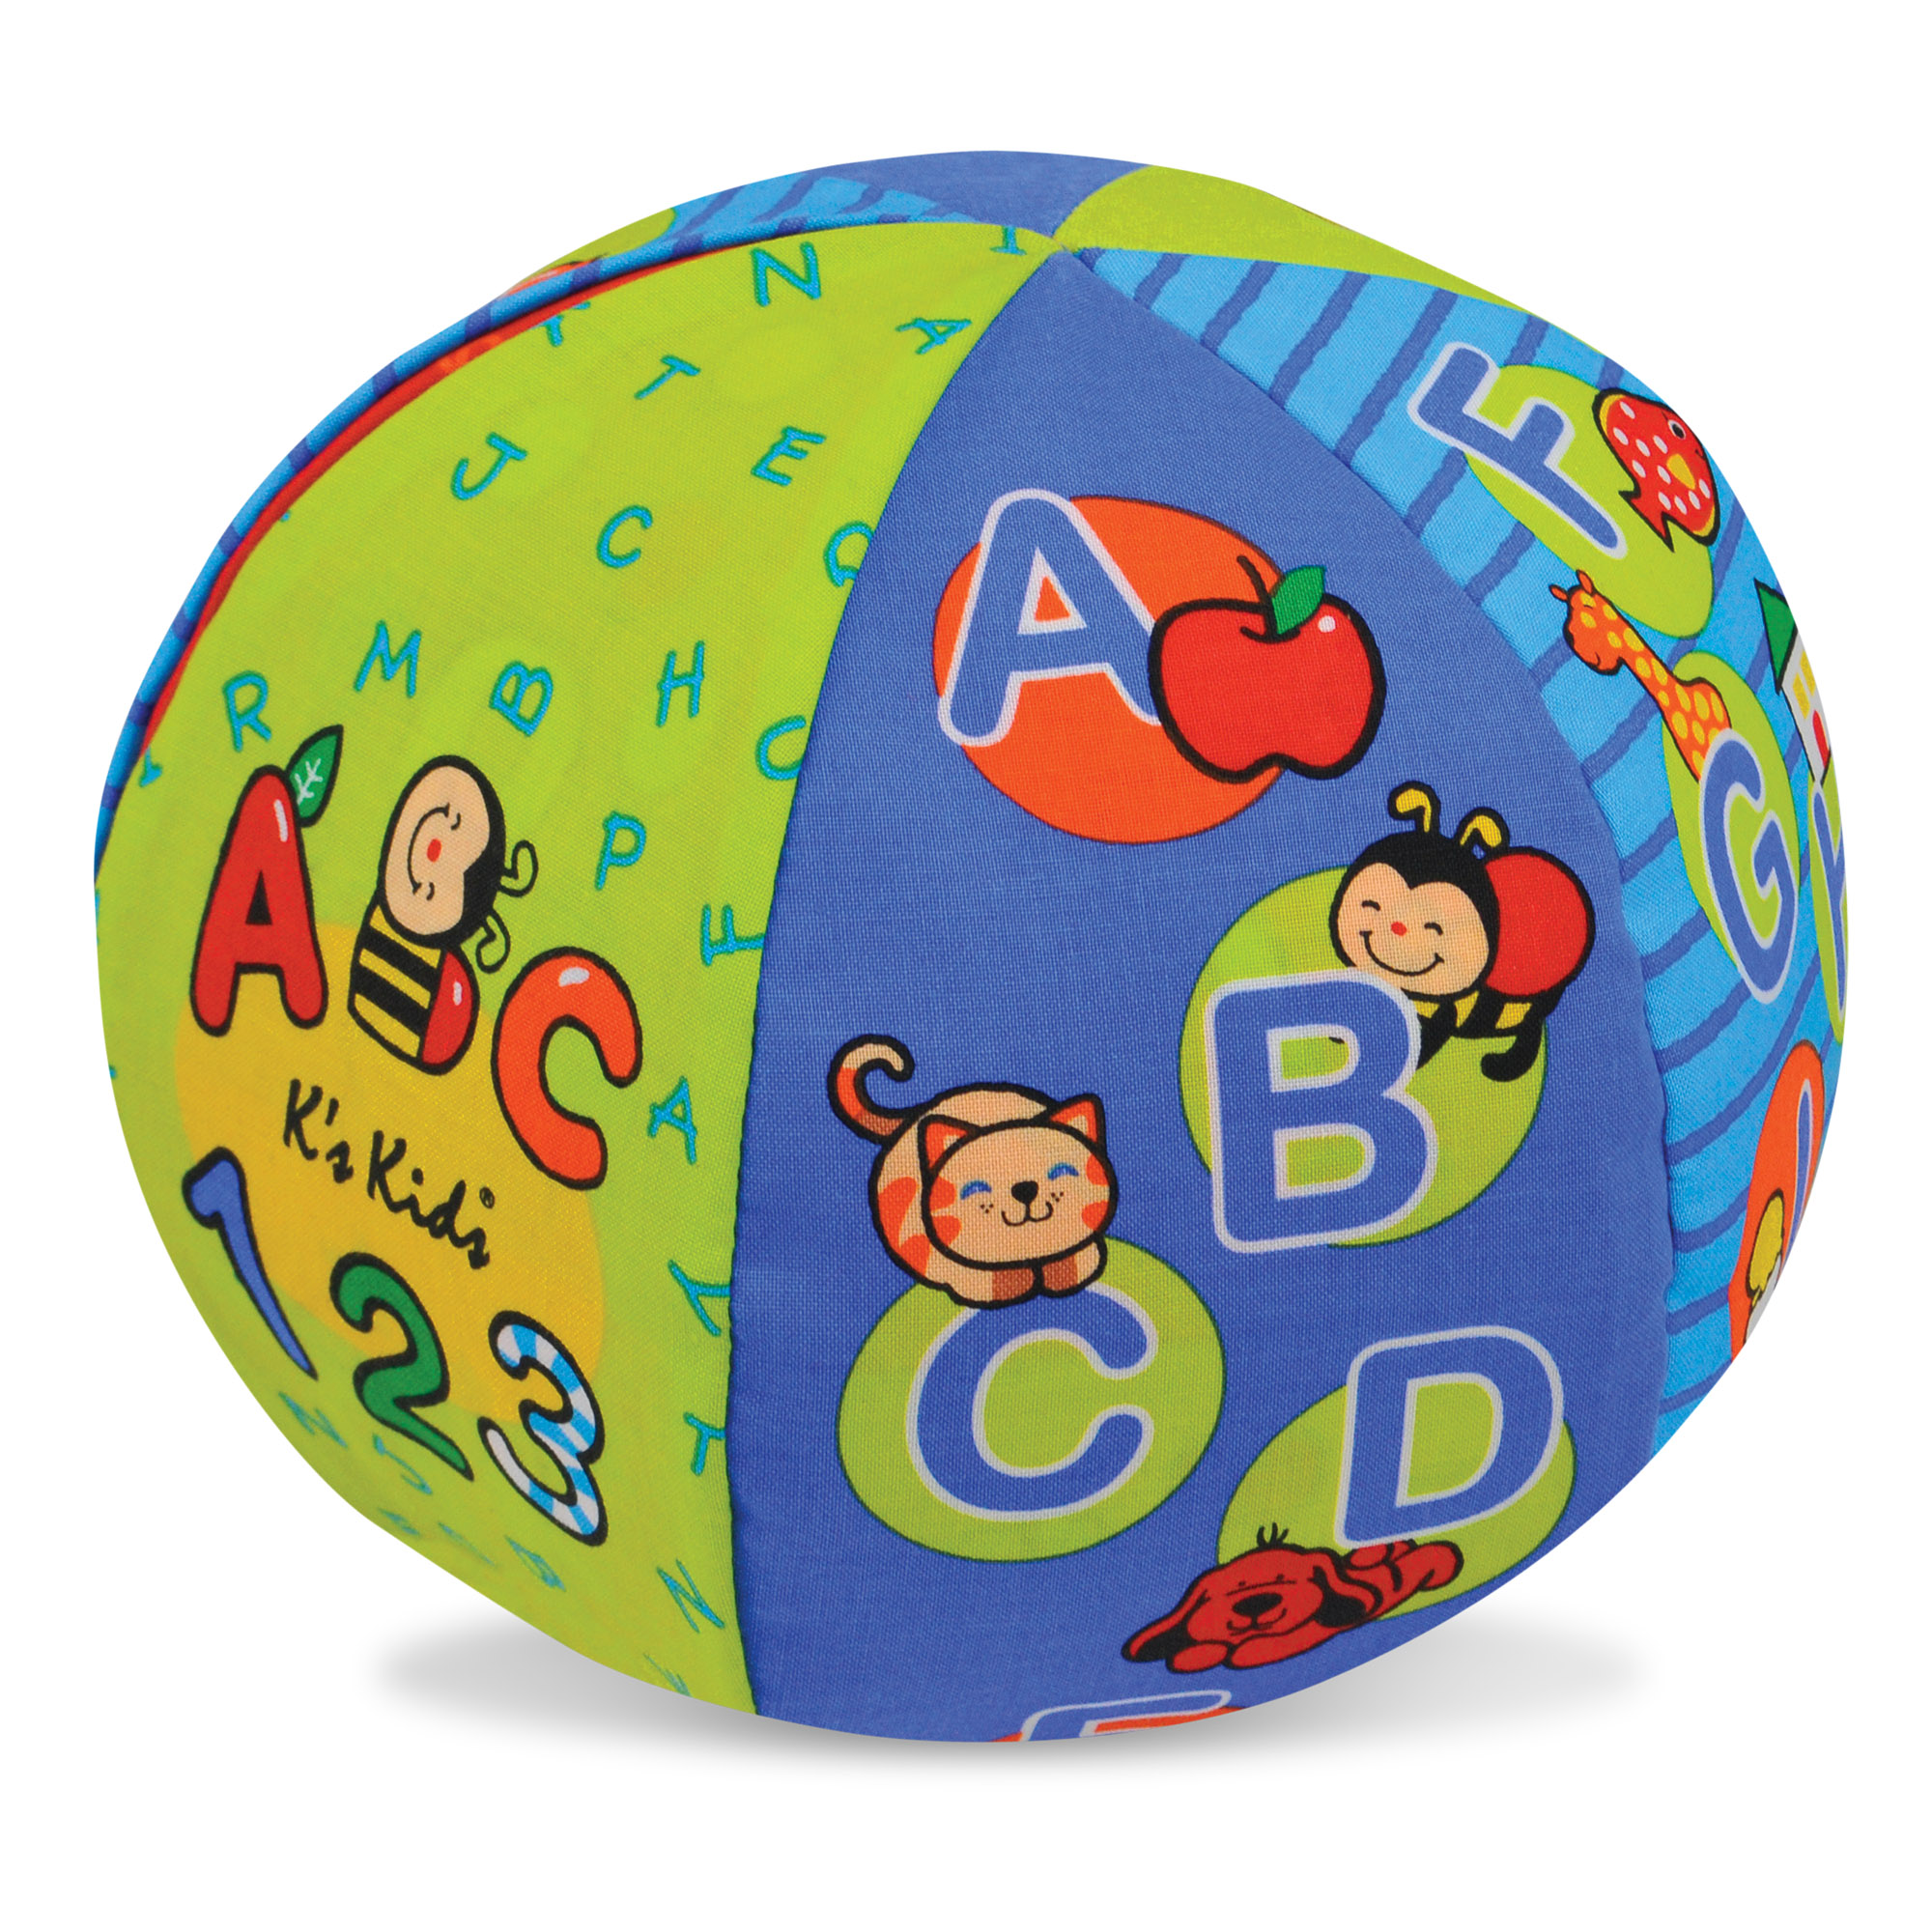 Toss it back and forth to hear this amazing ball say the ABCs or count to 10! Just flip a switch to select the mode you prefer, then turn the reversible fabric panels to highlight counting quantities, alphabet artwork, and bright colors and patterns. Designed to delight kids of any age, the pleasantly noisy ball is perfect for indoor tossing, catching, kicking, and rolling, helping babies, toddlers, and preschoolers develop gross motor skills as they play. The layered graphics also offer lots of detail to engage children's minds as they grow, gently introducing more advanced concepts such as odd and even numbers or vowels and consonants in a graphical way, and inviting exploration and discovery at a child's own pace. It's a wonderful way to introduce early-learning concepts in a playful, physical way that's perfect for young children! (Play tip: Listen for auditory surprises to cue more laughter along the way!) Melissa & Doug K's Kids toys nurture early childhood development in three